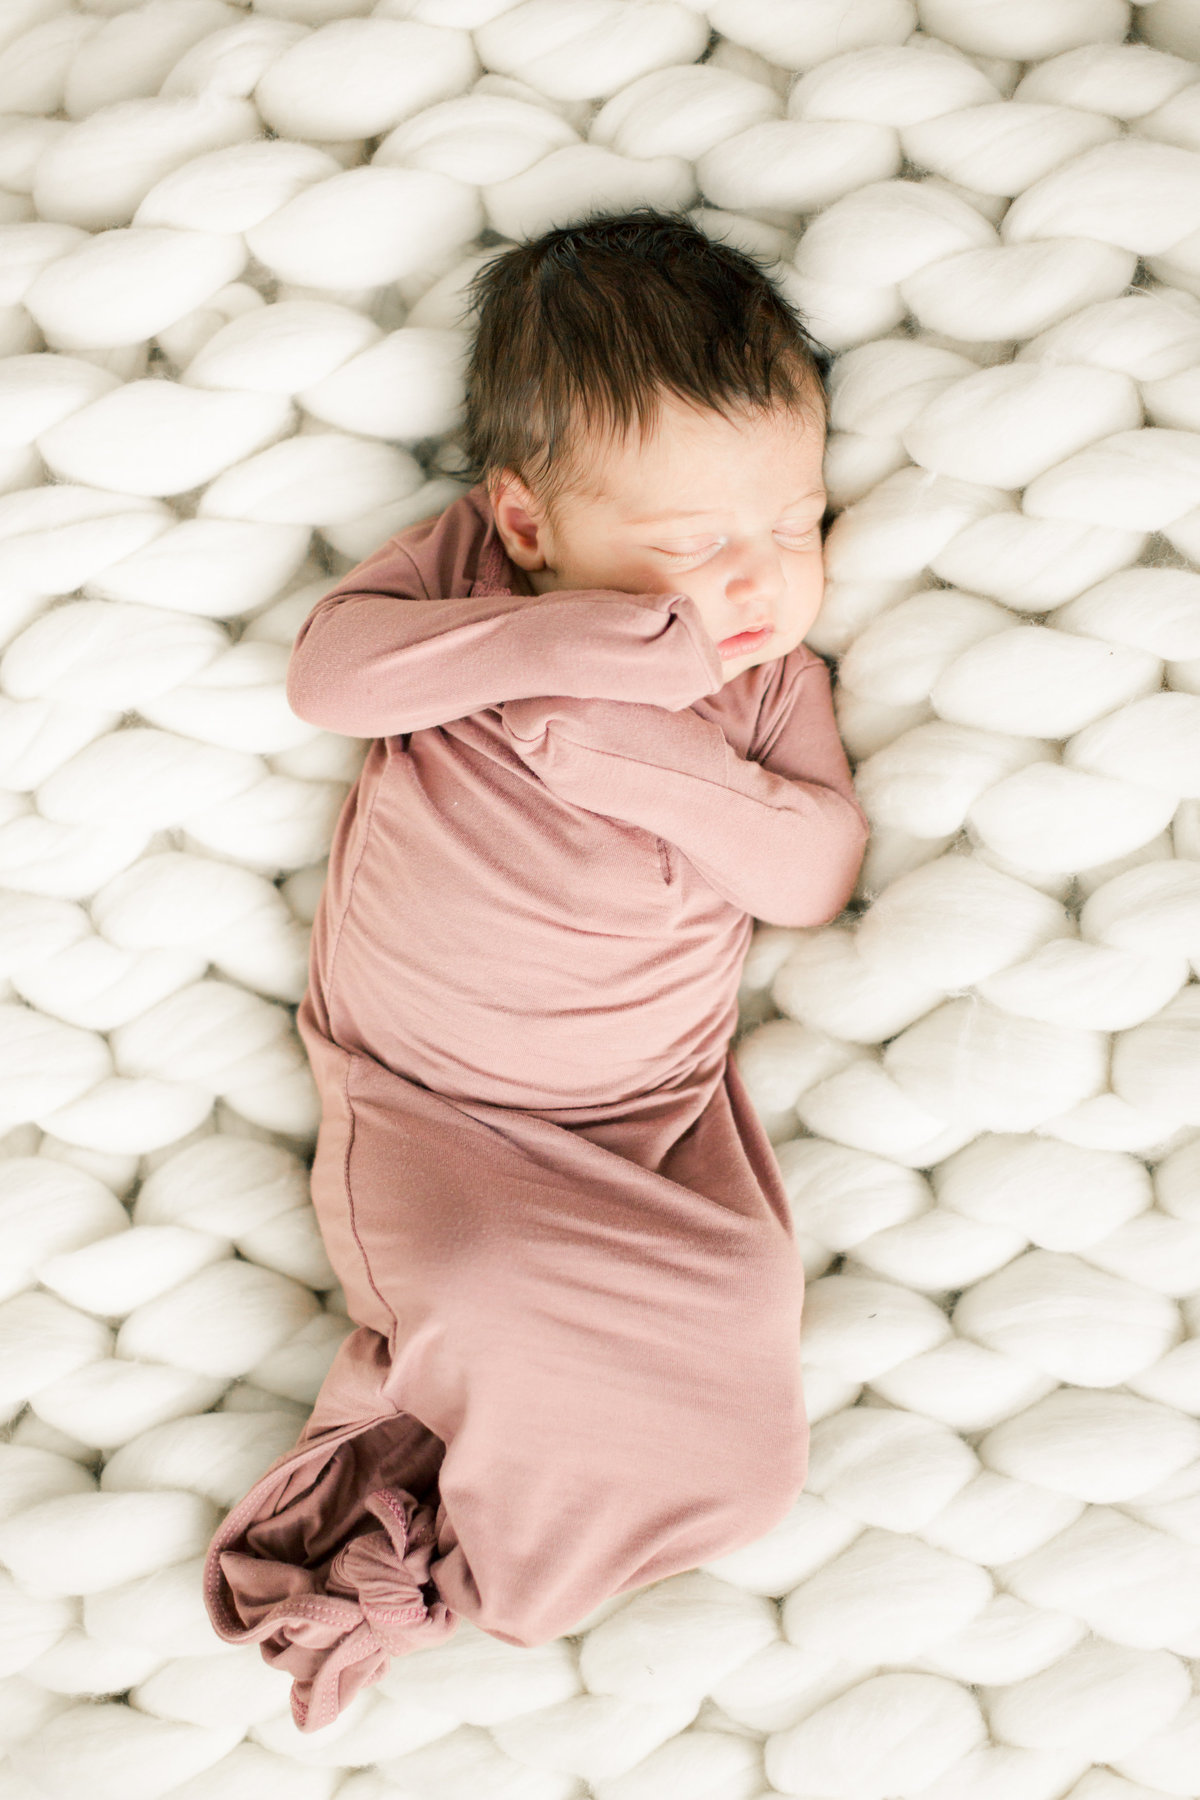 baby lays on chunky white wool blanket for newborn portraits